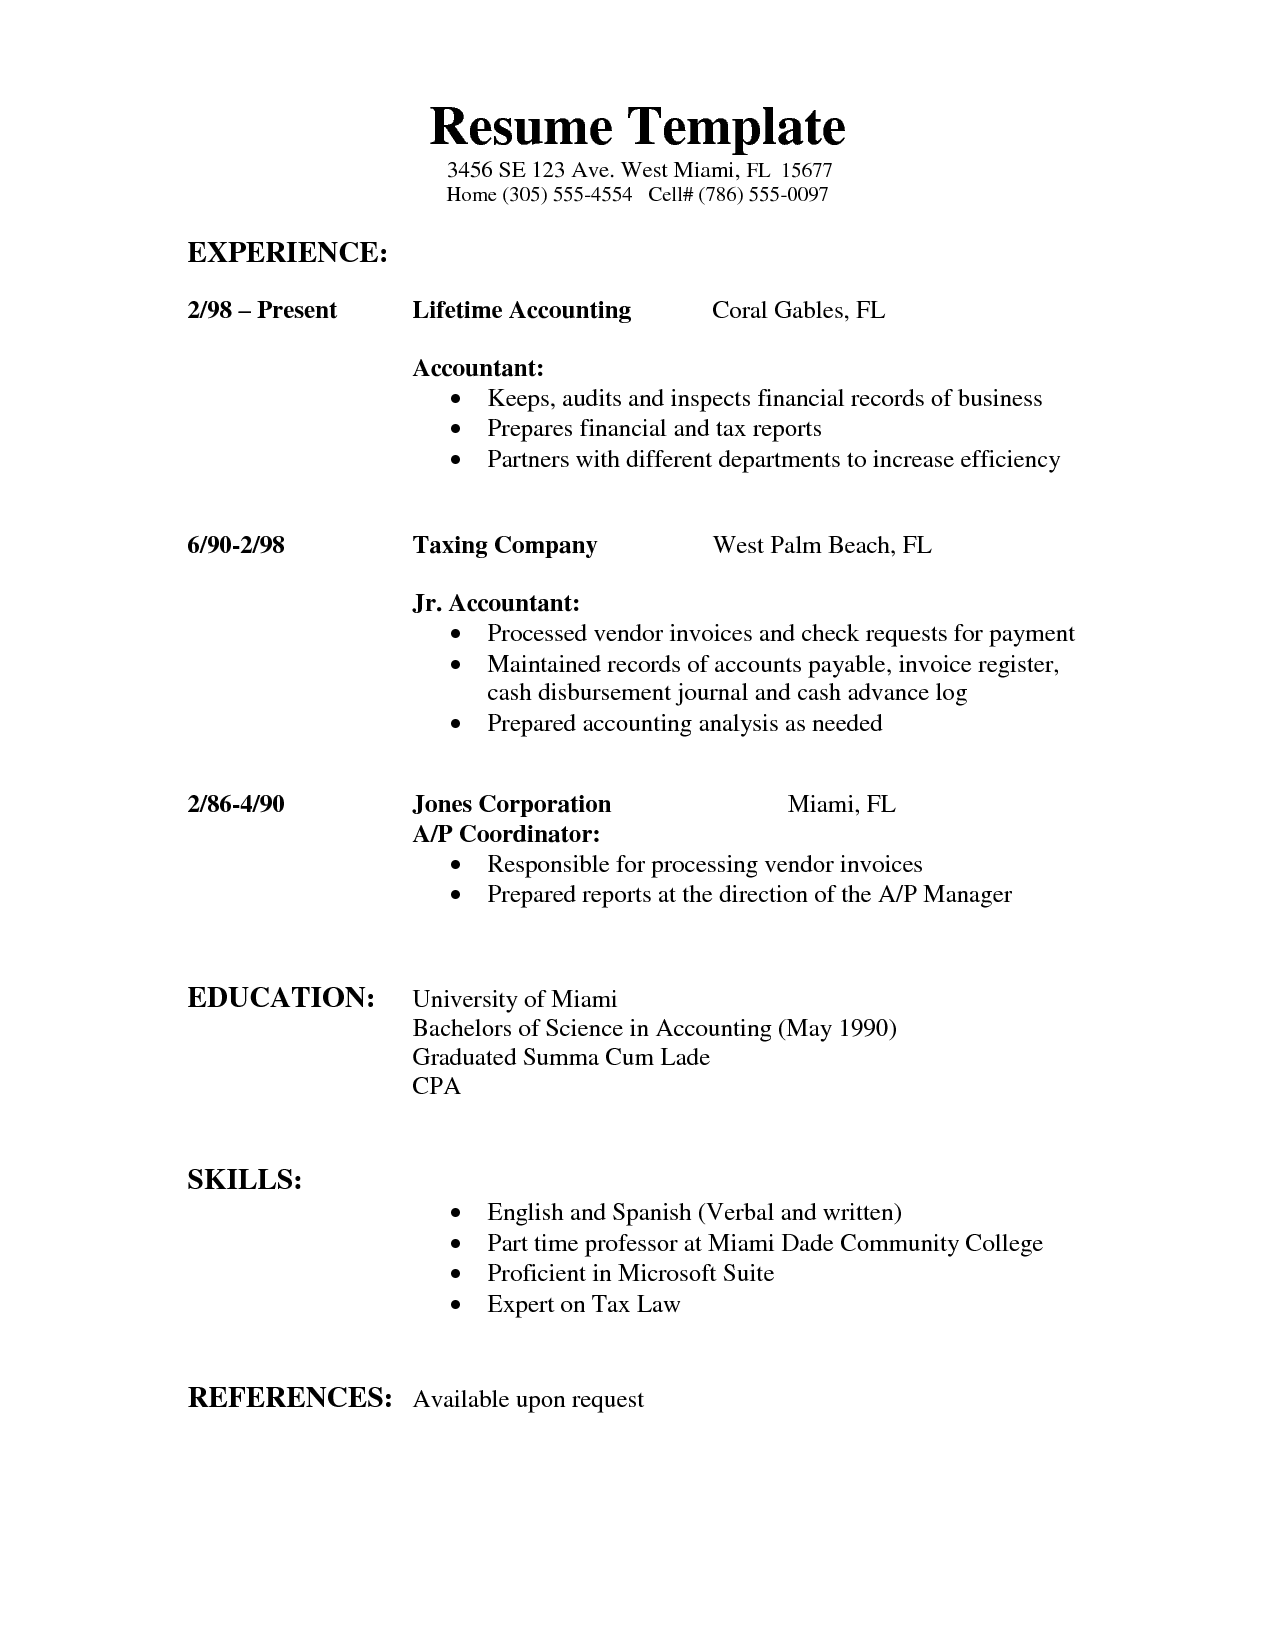 resumes | Resume Examples | Projects to Try | Pinterest